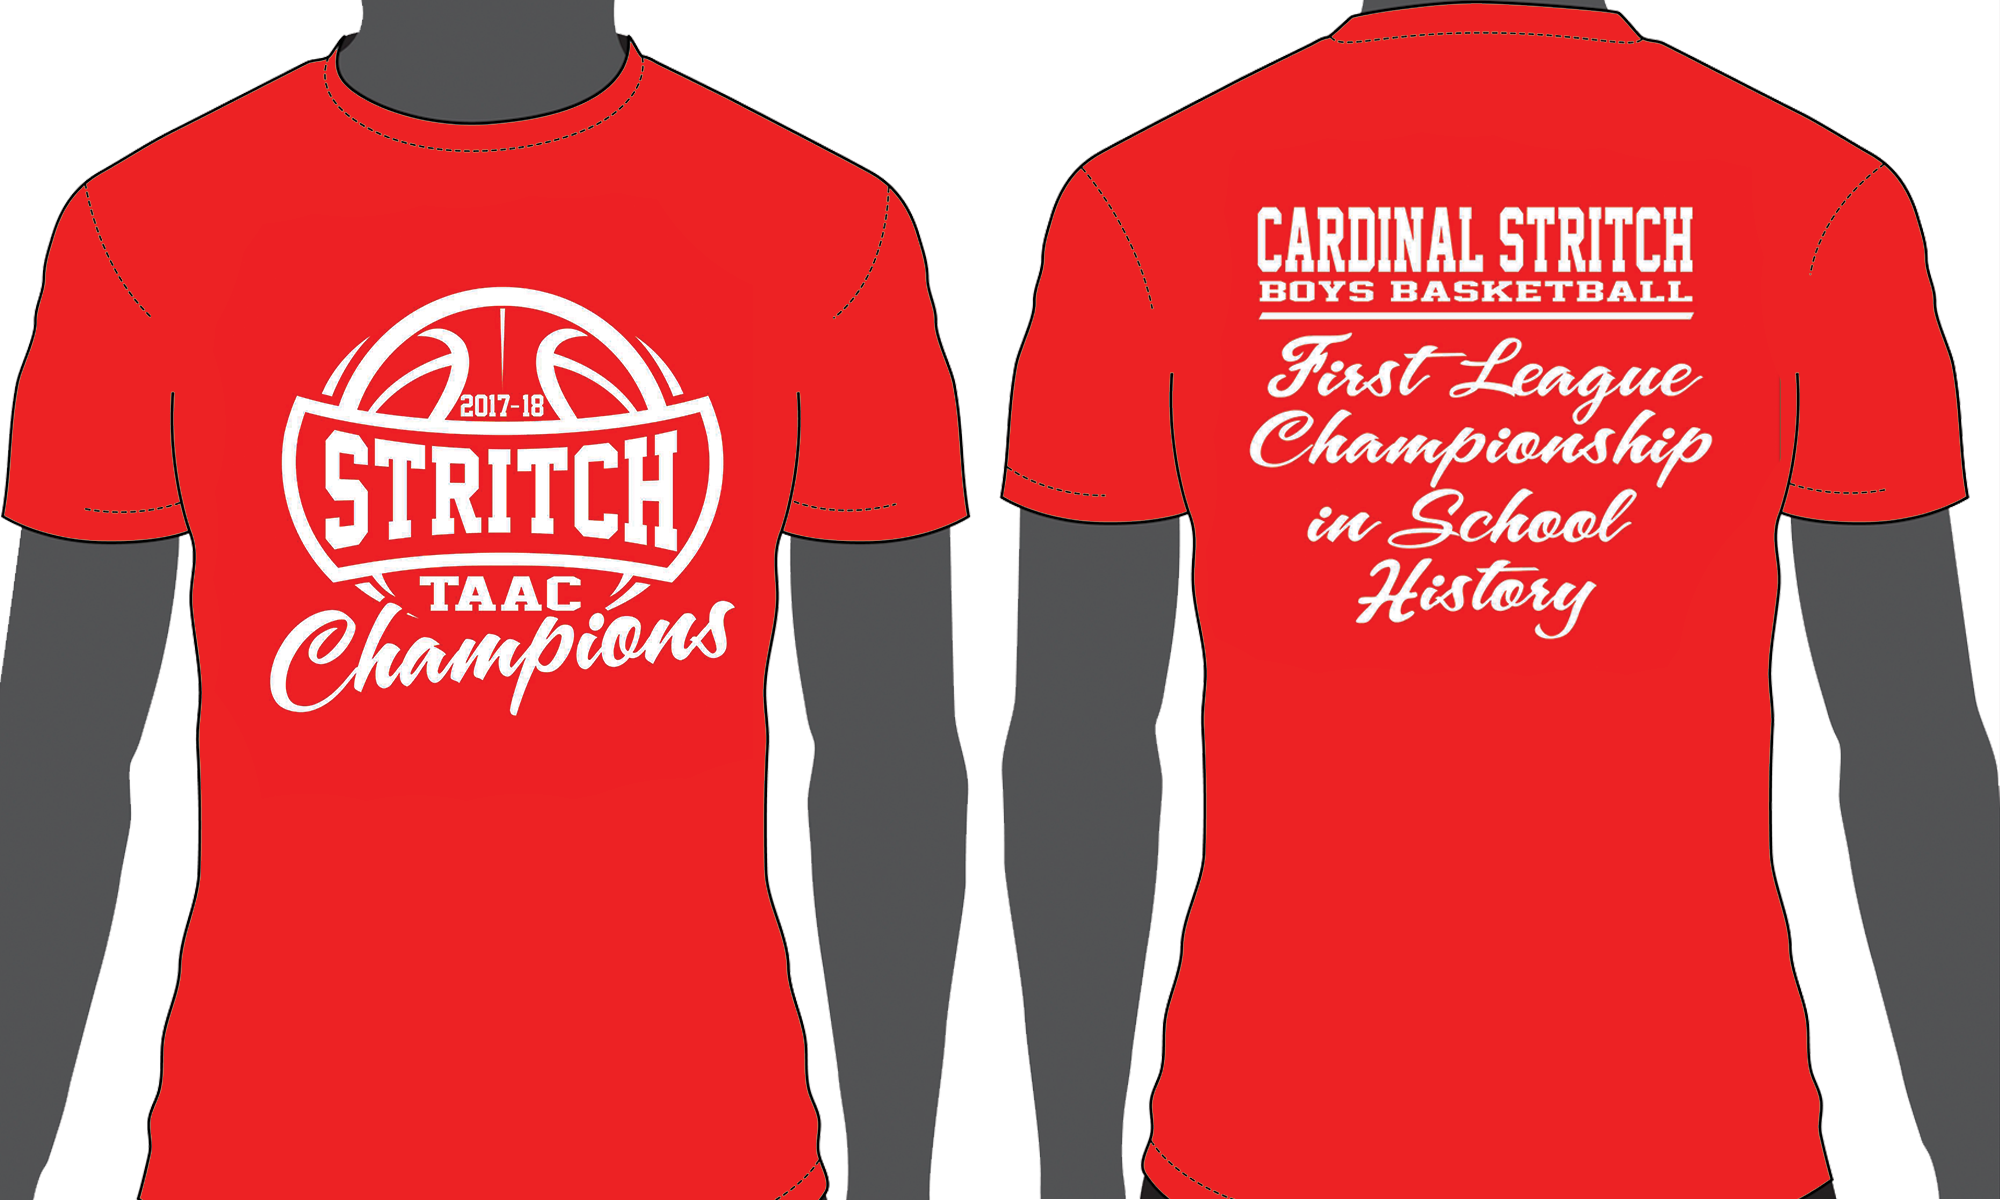 Basketball championship clipart for shirts image download Sports ALL | Cardinal Stritch image download